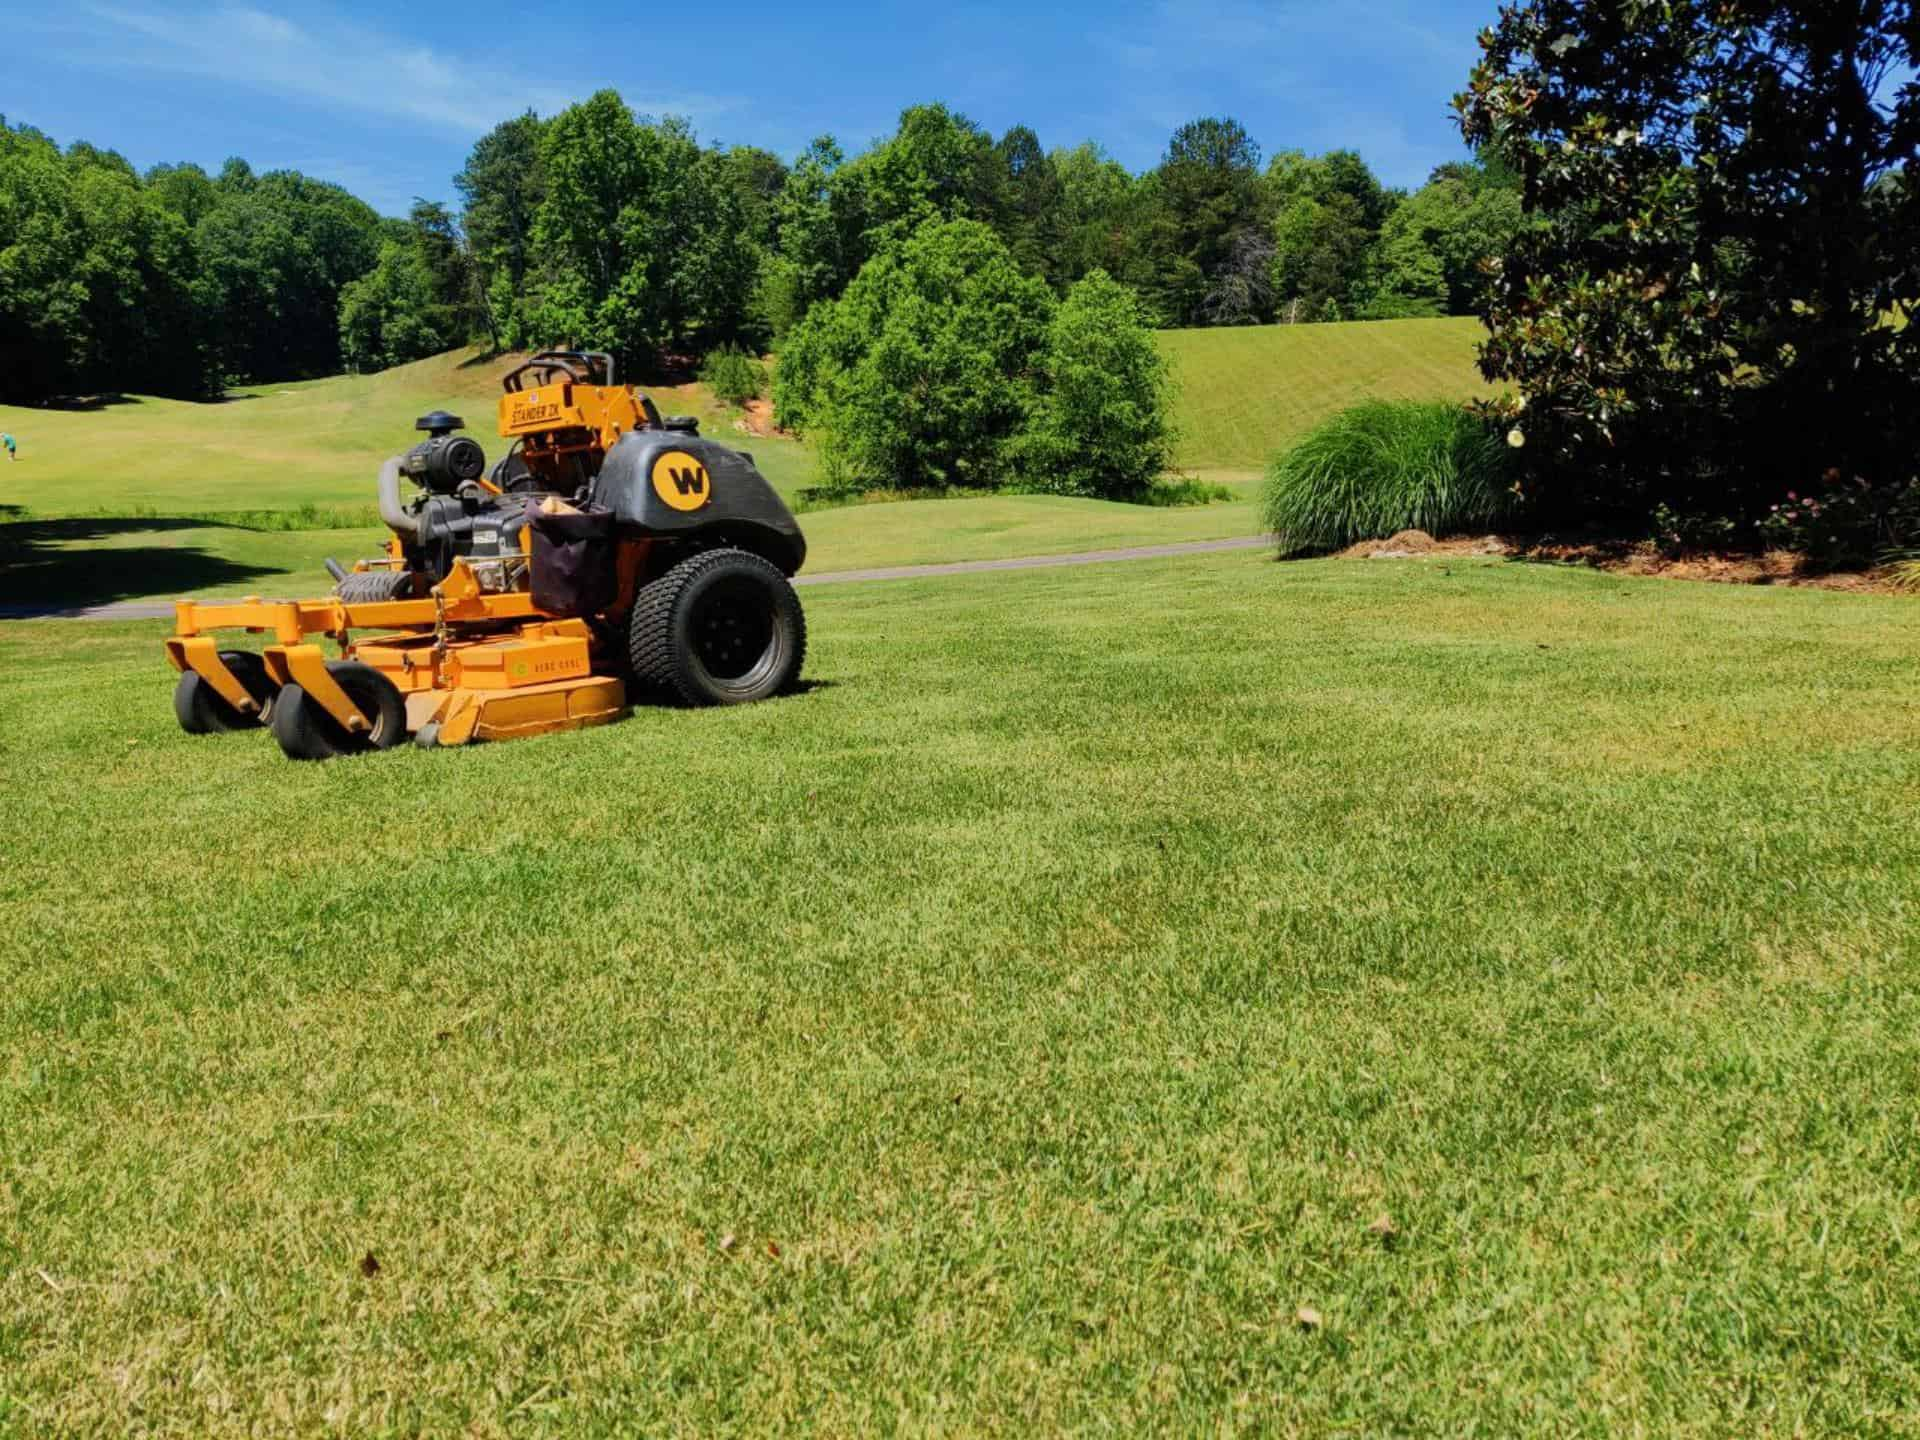 Lawn Care Maintenance Service by Stepping Stone Lawn Care company - Buford - Flowery Branch - Suwanee - Sugar Hill - Georgia